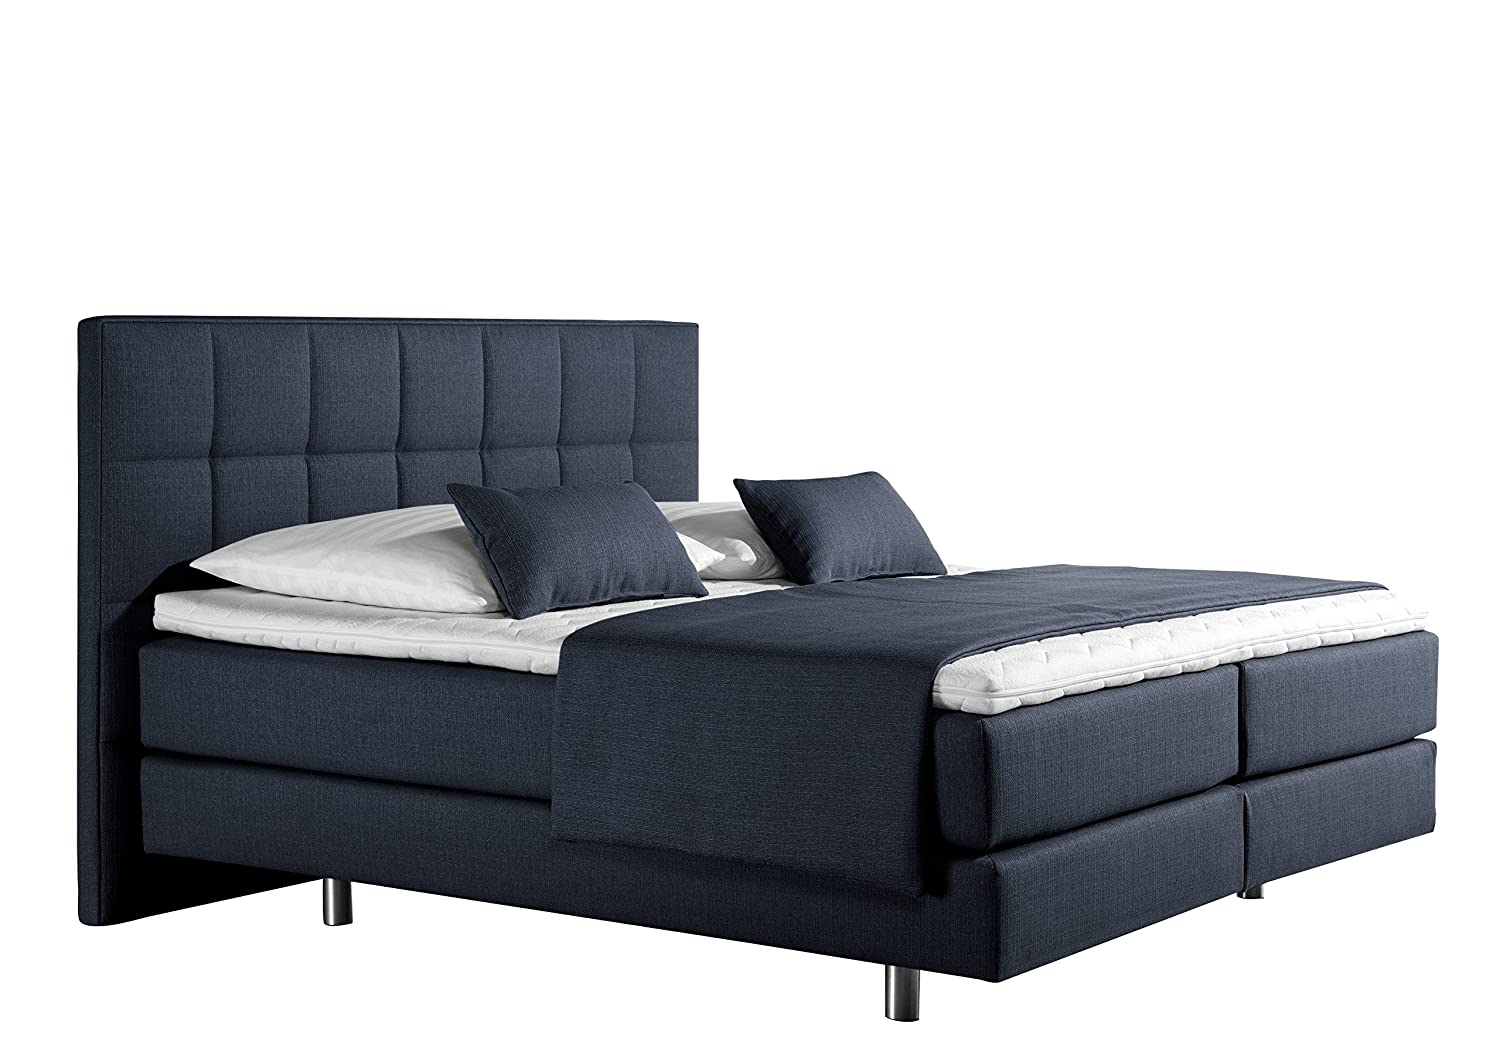 Maintal Betten 237456-3169 Boxspringbett Neon 160 x 200 cm, Strukturstoff denim-blau